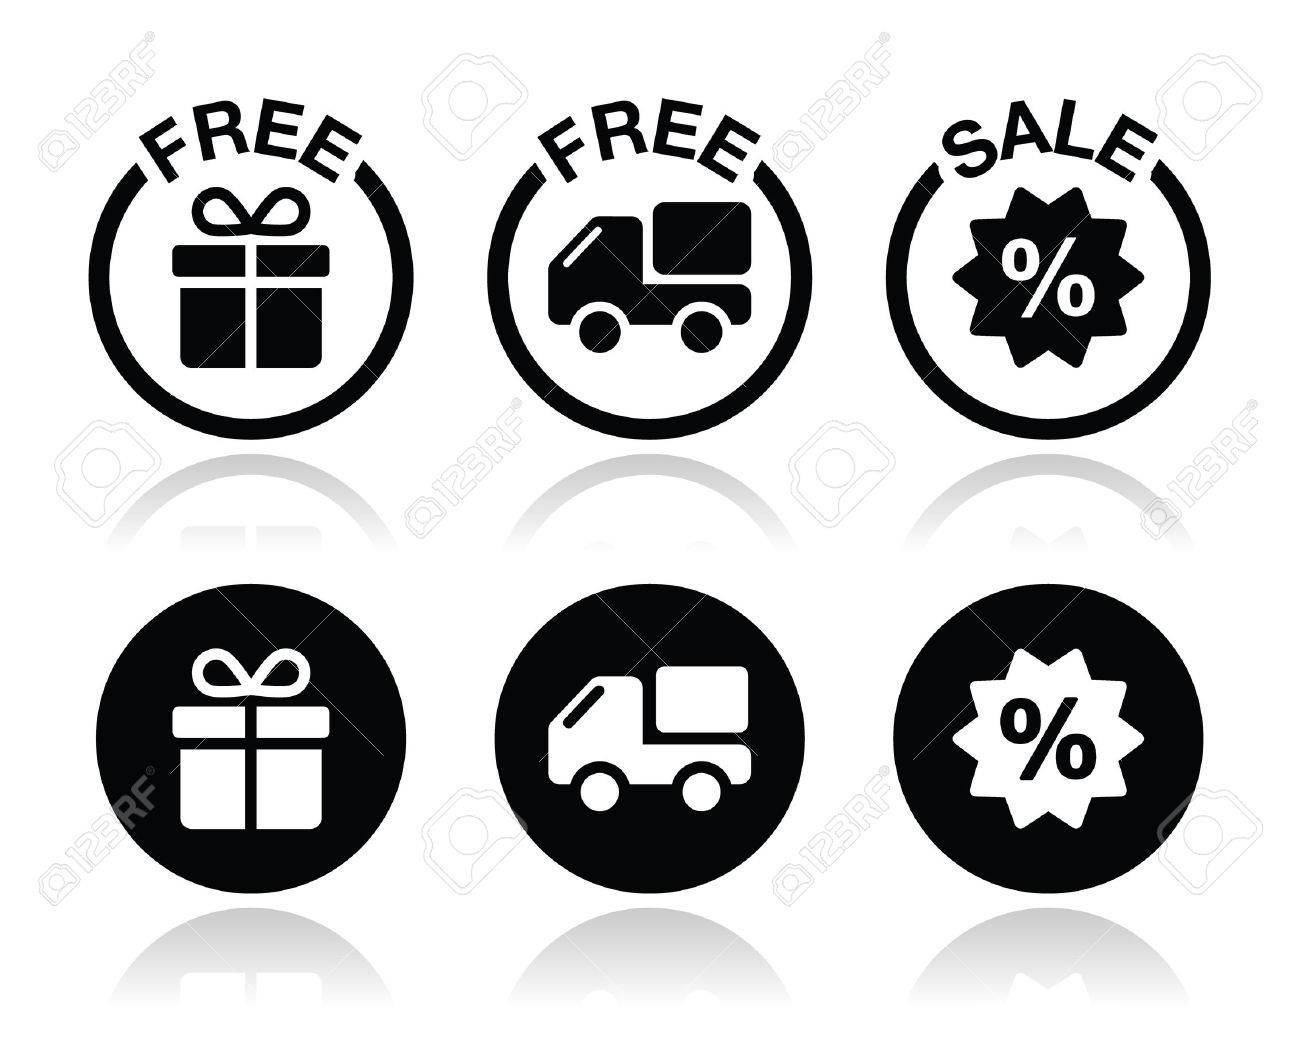 Free gift, free delivery, sale icons set Stock Vector - 23883964